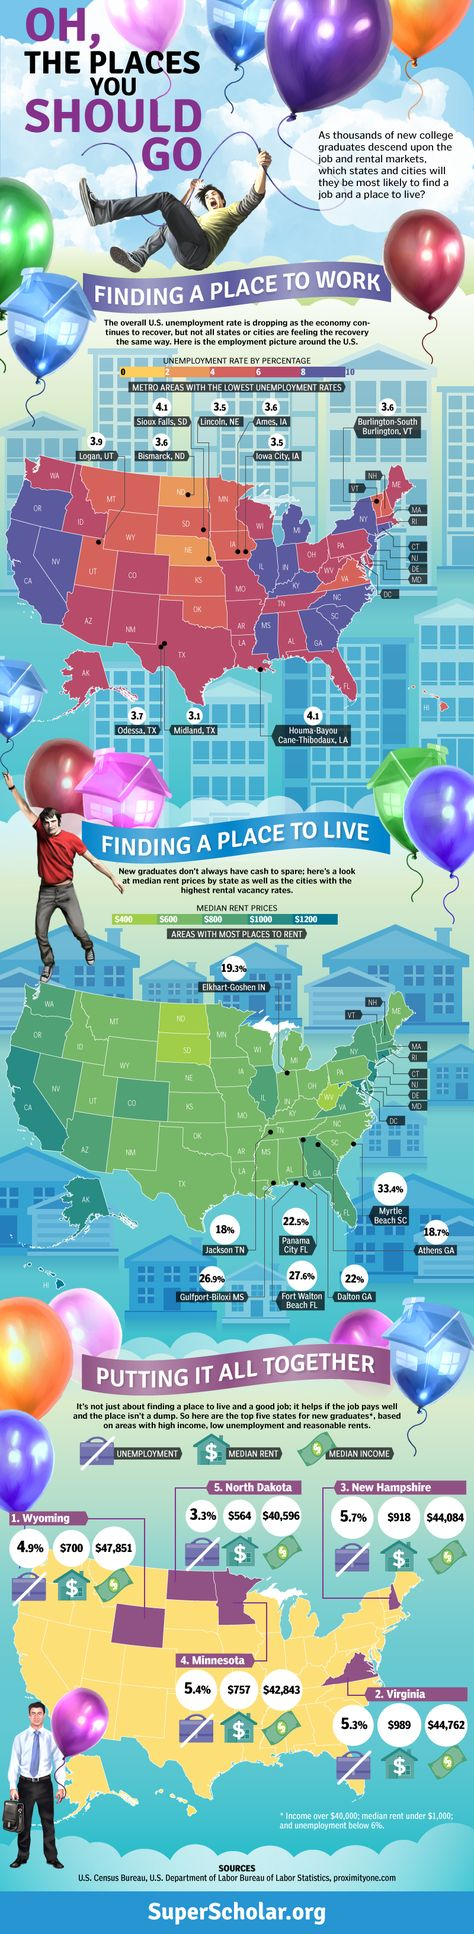 Oh, The Places You Should Go! Where are the best places to look for jobs after you graduate.